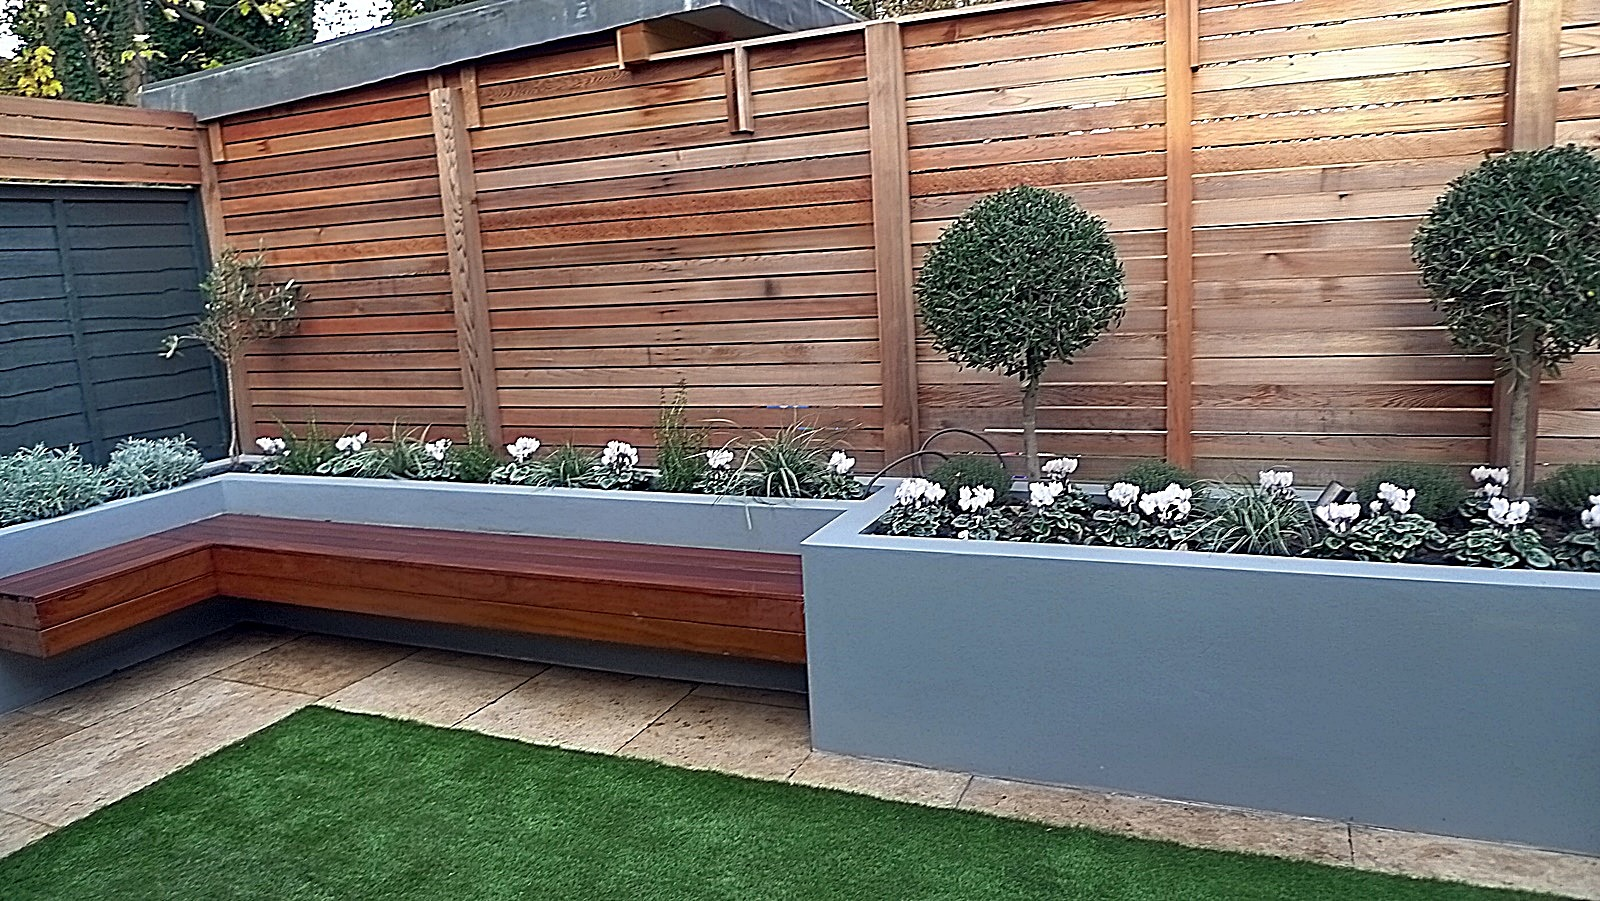 Modern garden design London easy grass fake formal trellis raised beds Chelsea Fulham Streatham